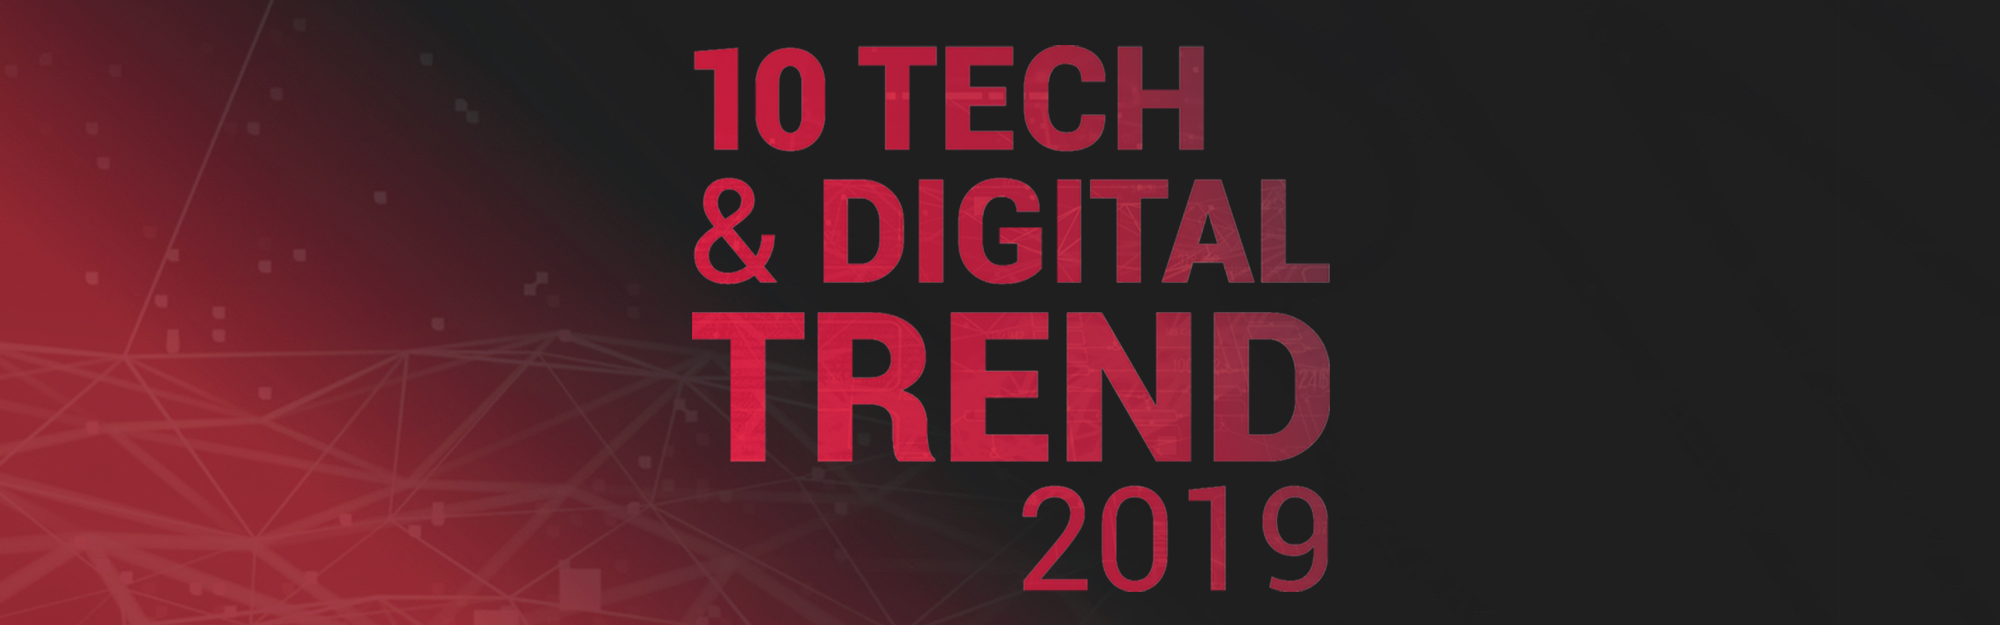 Tech & Digital Trend: to change or not to change? That is not the question